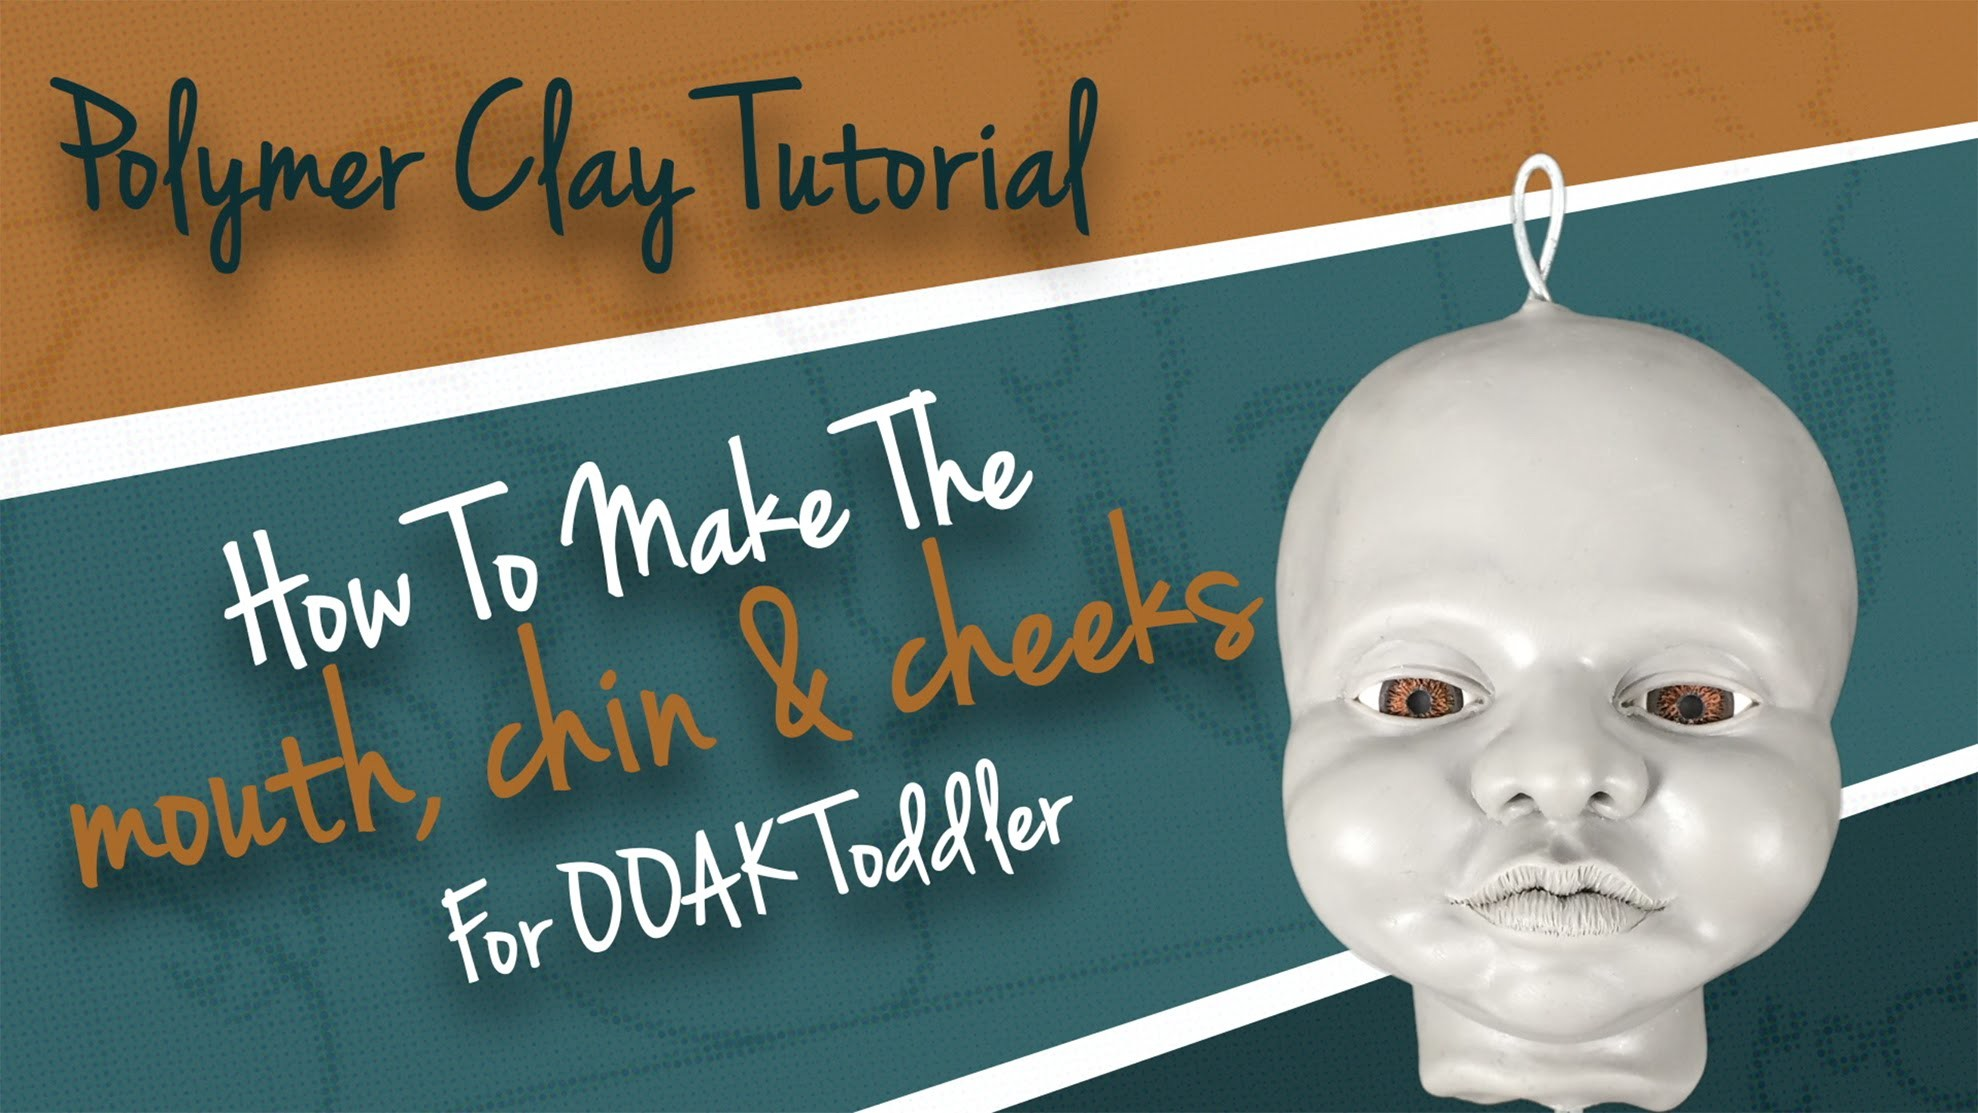 """Polymer Clay Tutorial """"How to make the mouth, chin & cheeks for OOAK Toddler"""""""